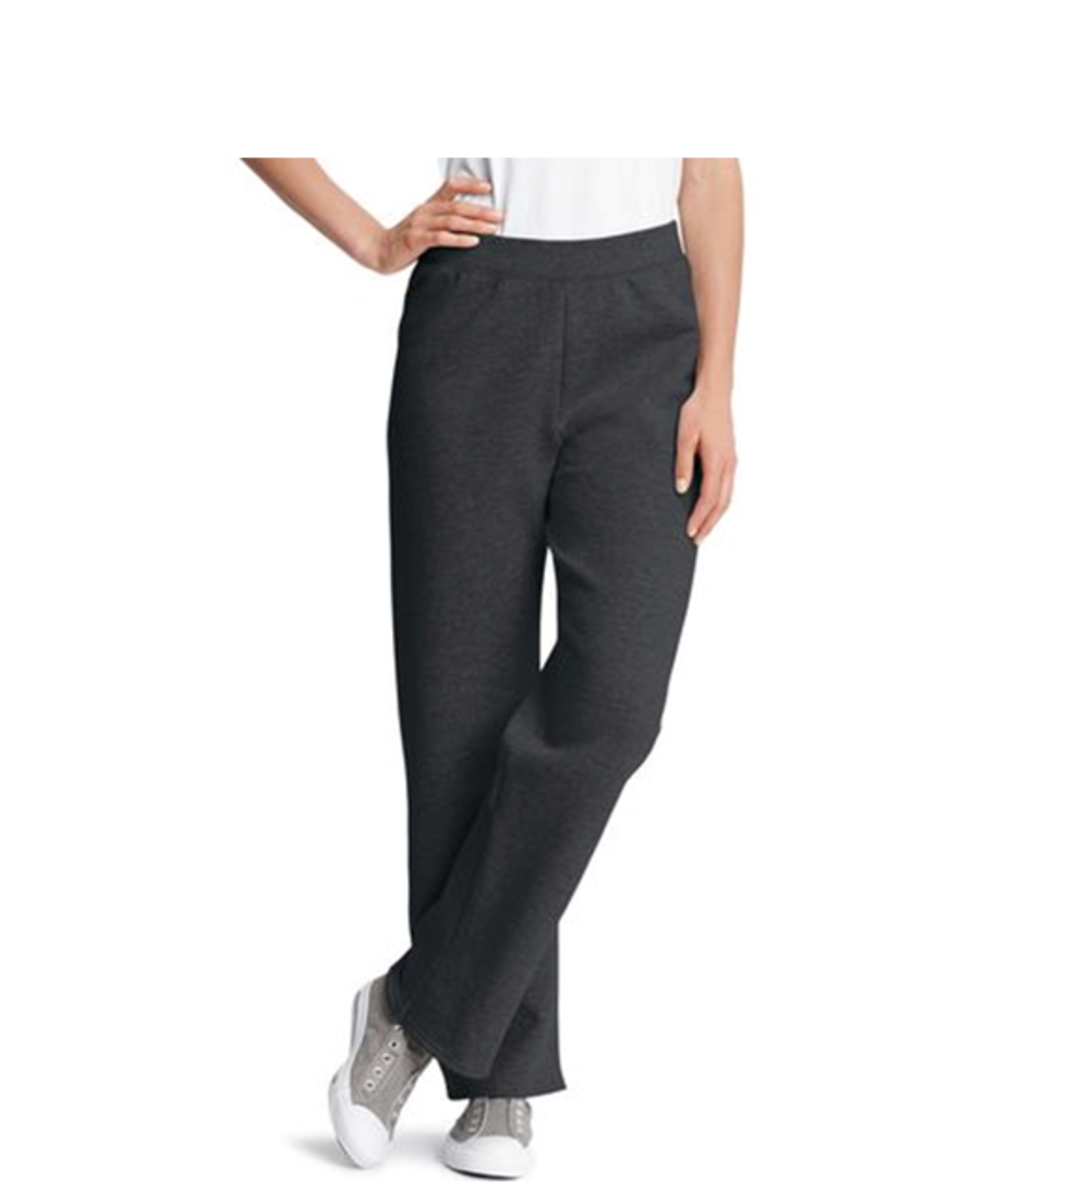 cotton/polyester fleece relaxed sweatpants with flat elastic waistband -- no drawstring, pockets or cuffs